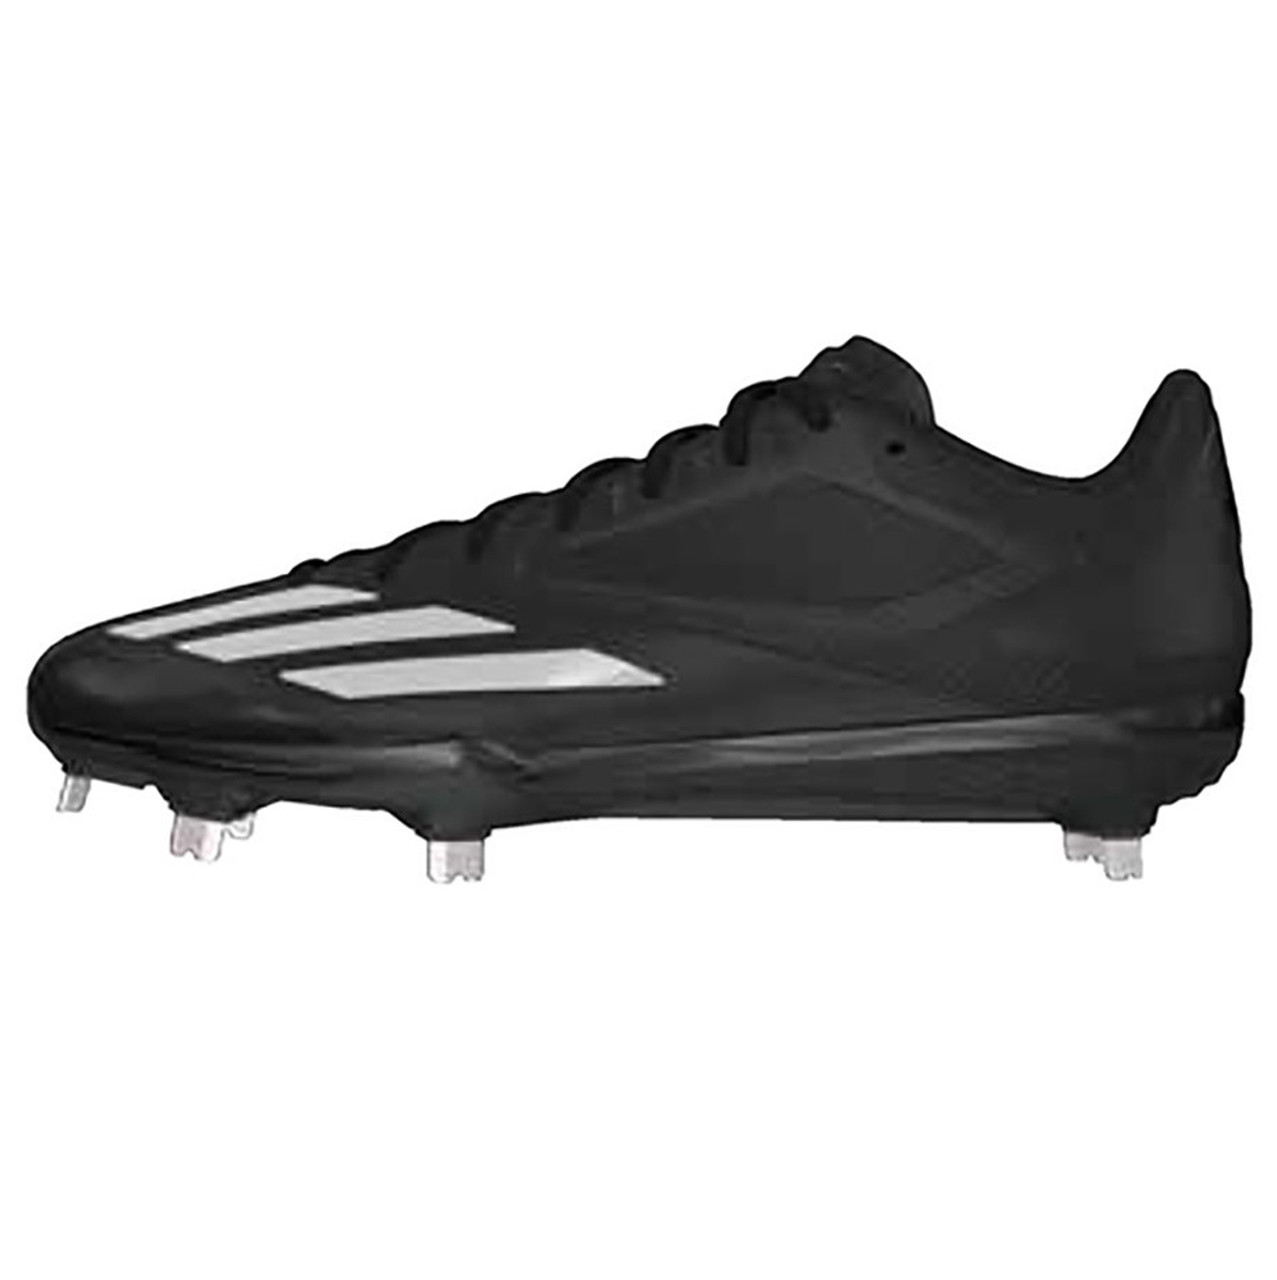 adizero Cleats: Lightweight Football & Baseball Cleats